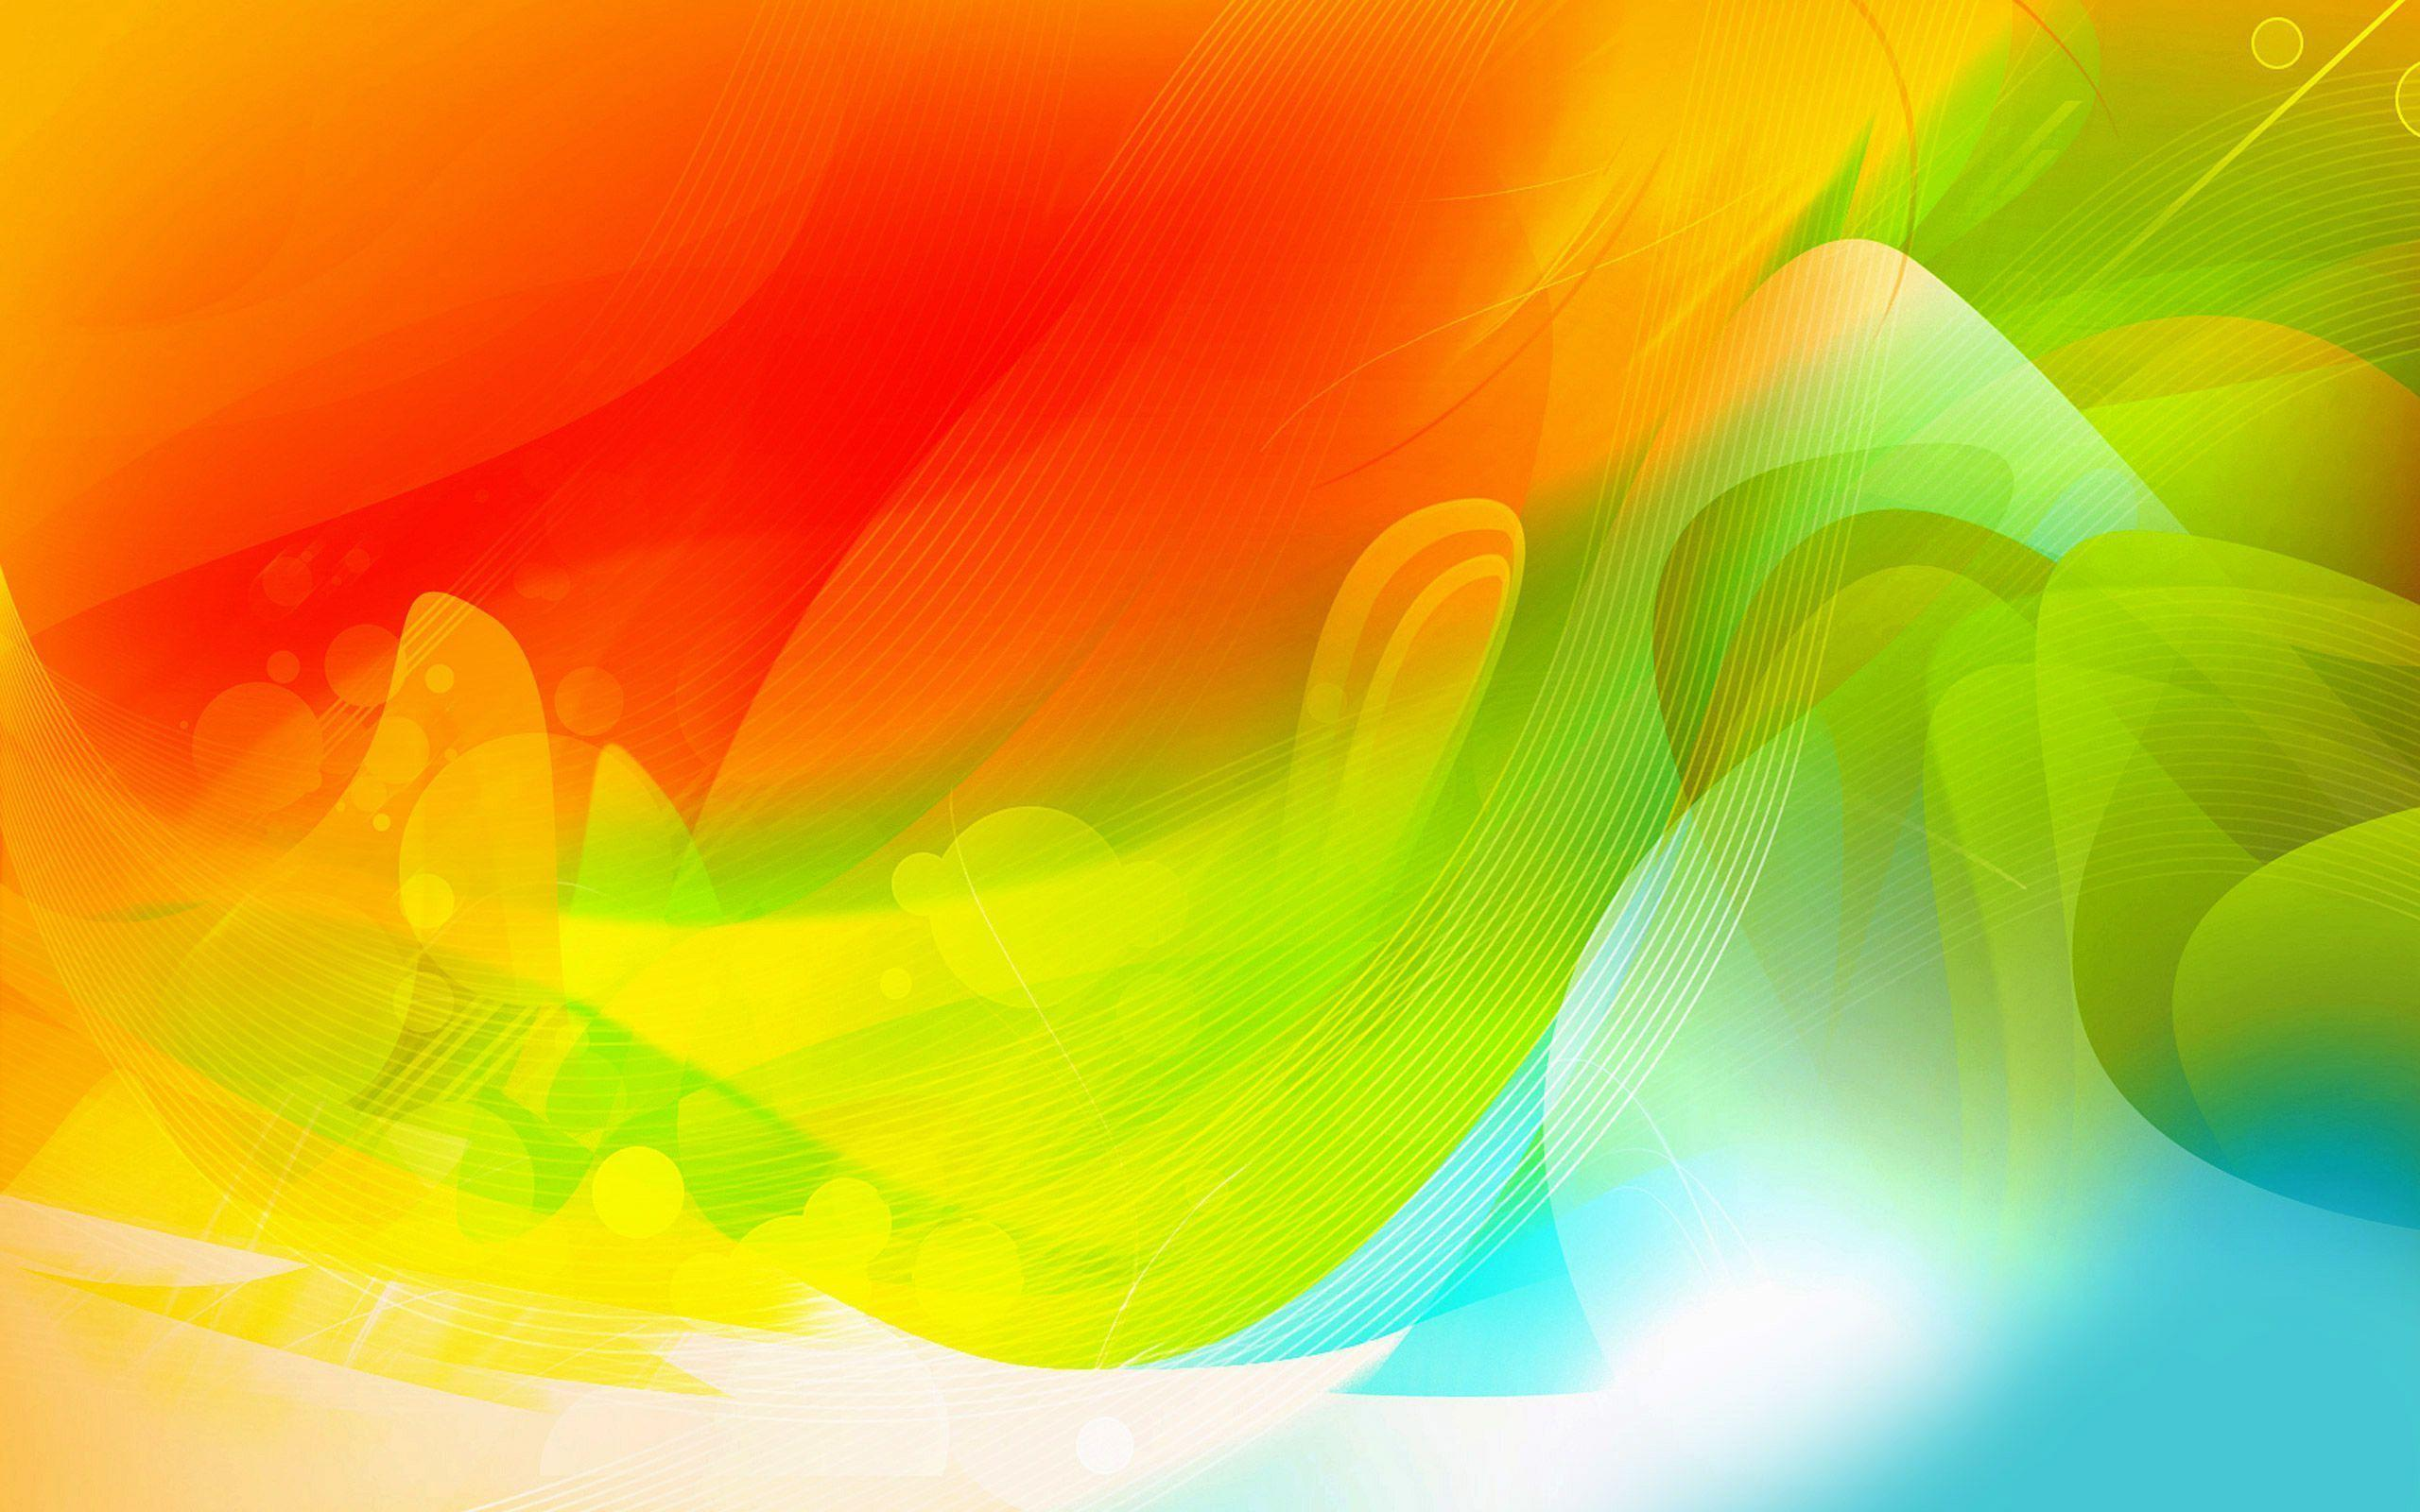 Rainbow Color Wallpapers - Wallpaper Cave: http://wallpapercave.com/rainbow-color-wallpaper